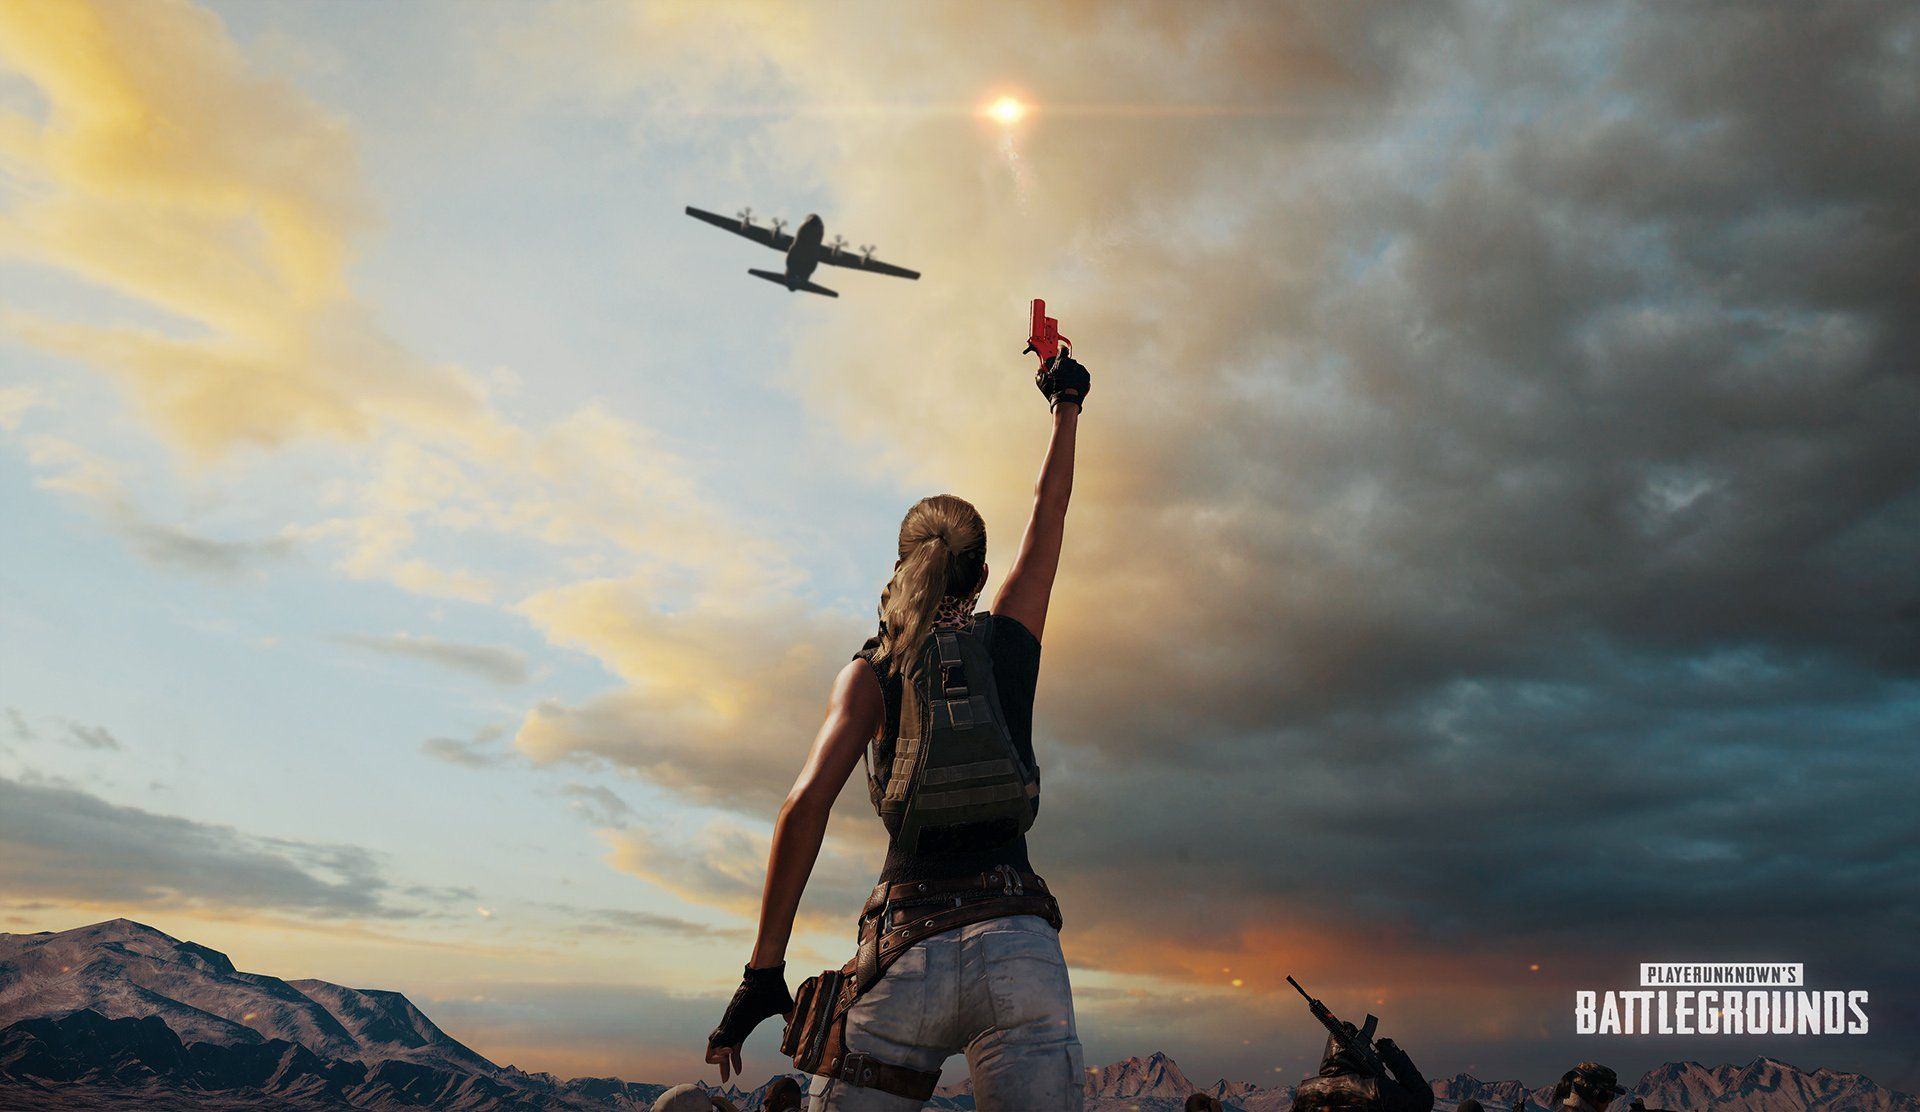 Pubg Mobile Wallpaper Vikendi: 'PUBG' Gets Flare Gun Miramar Event Mode